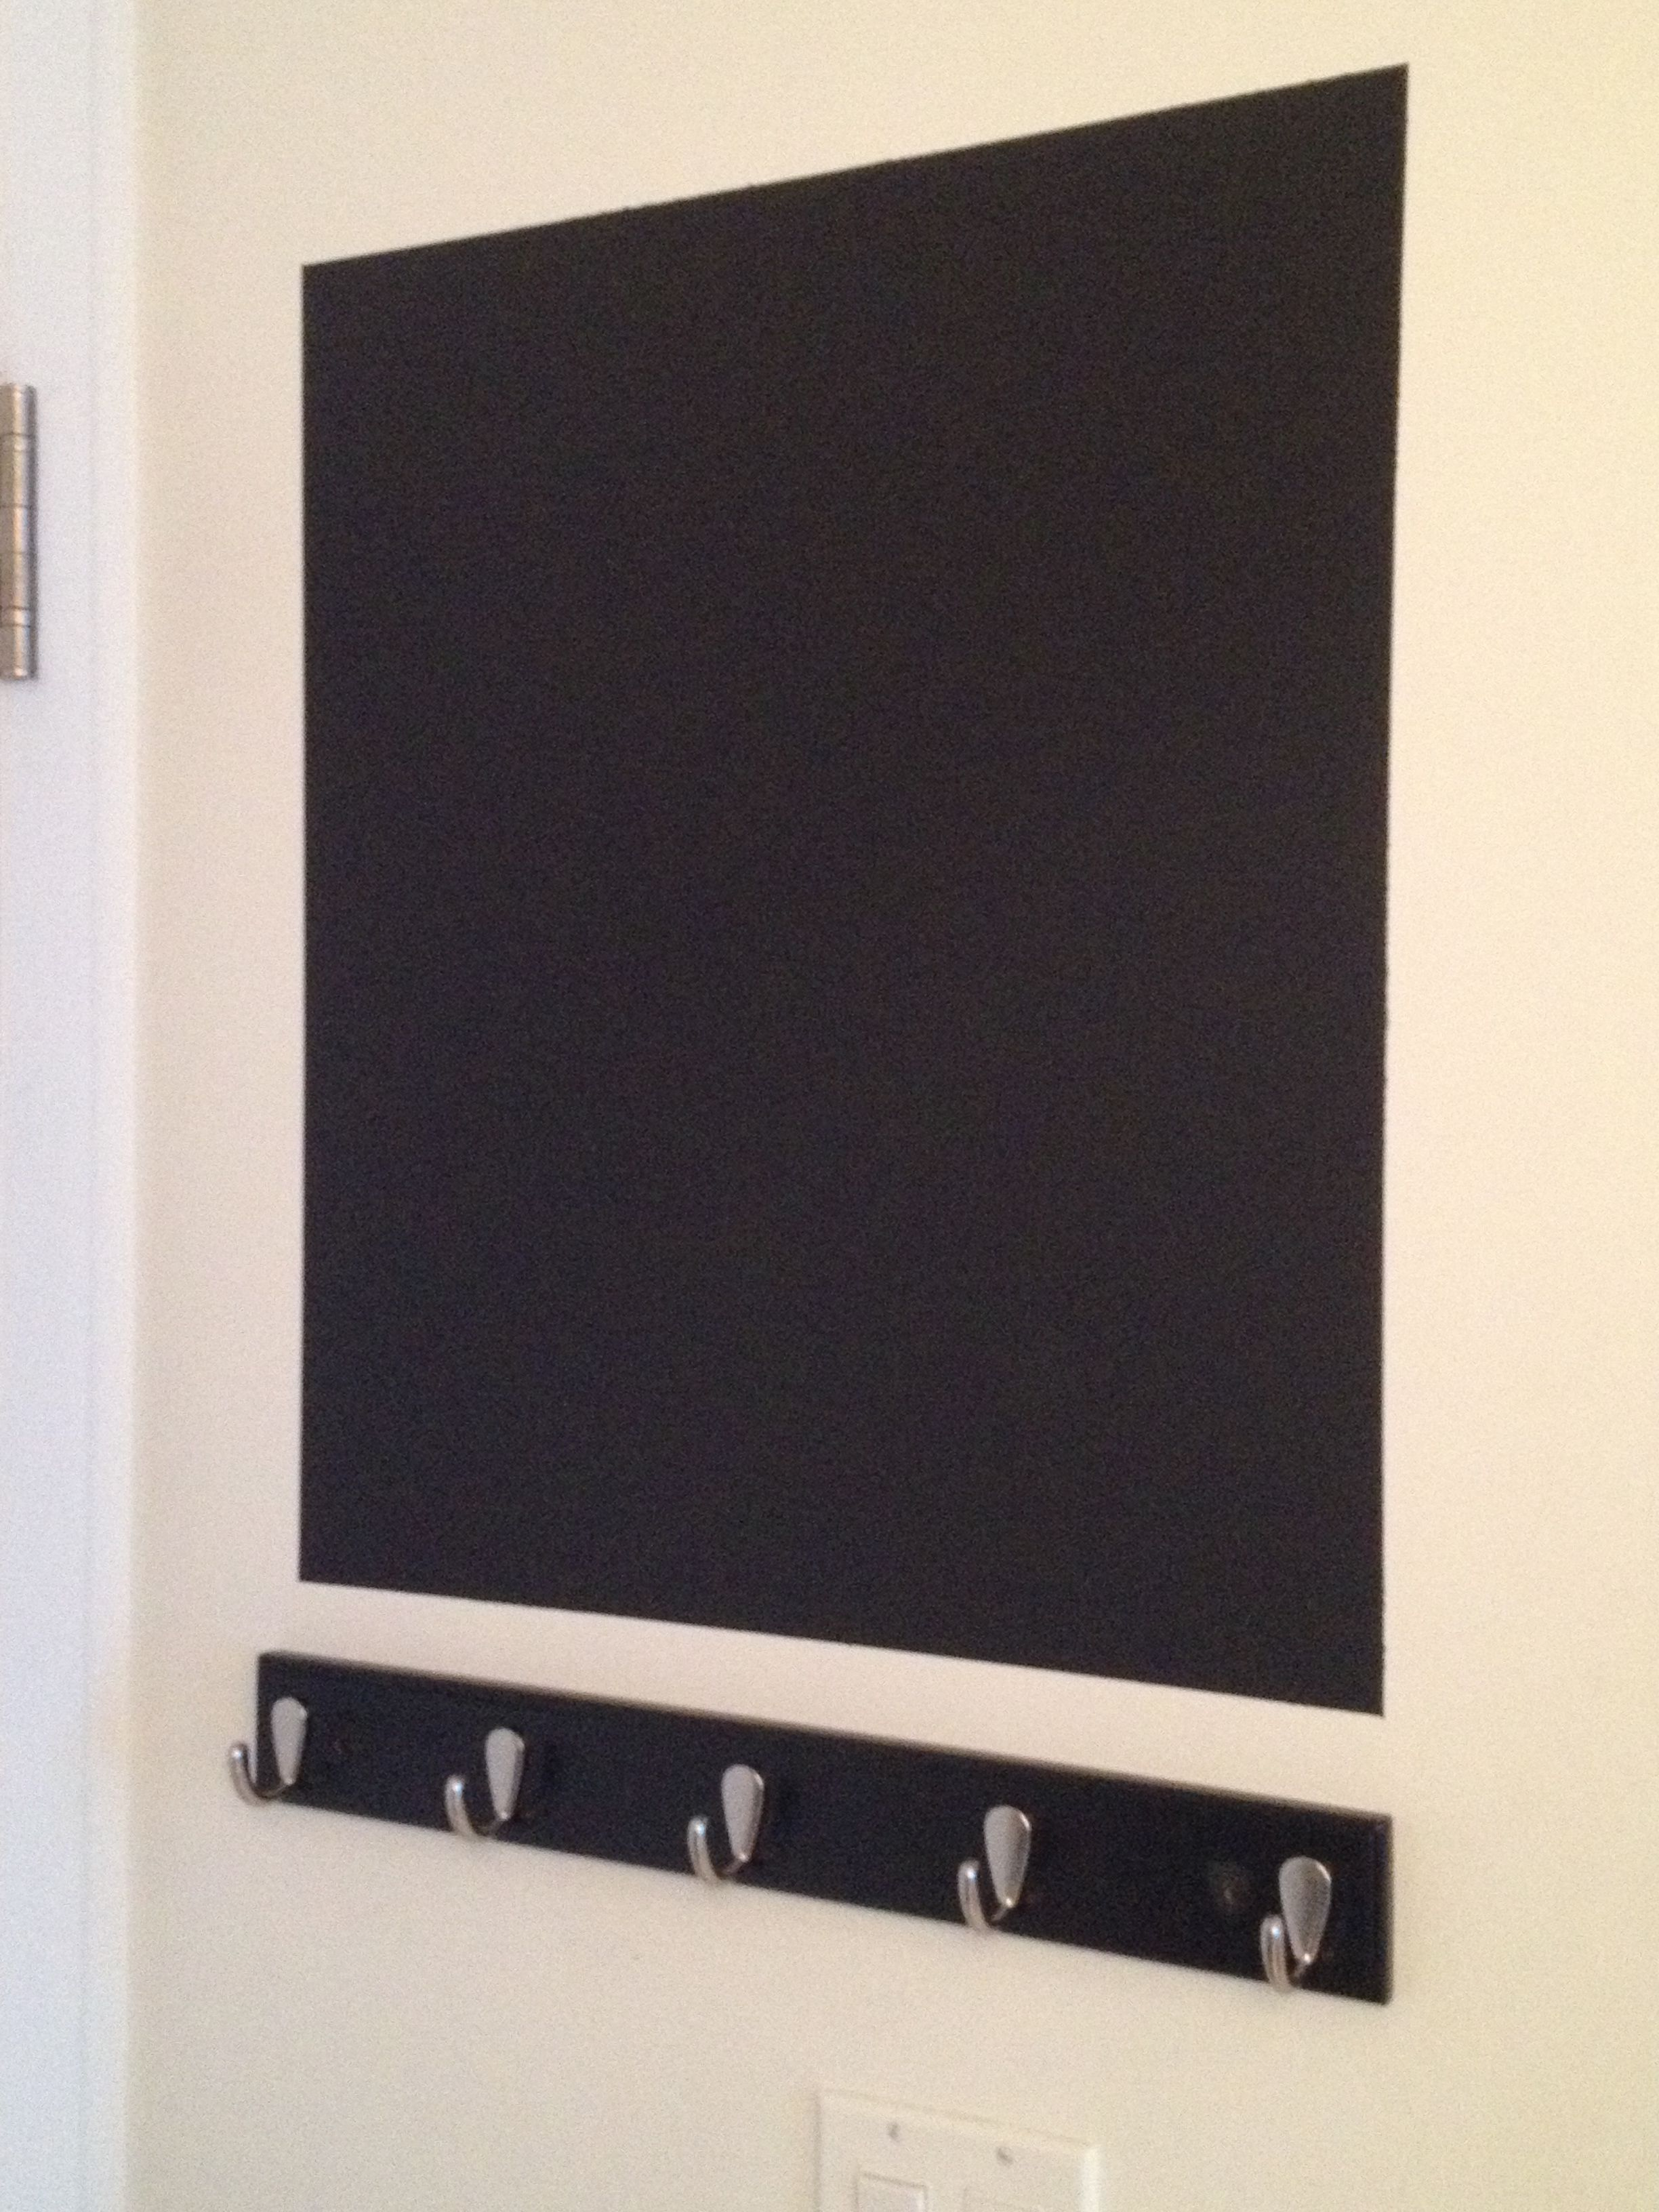 DIY Chalkboard ....paint, brush and a wall gives you an easy message board